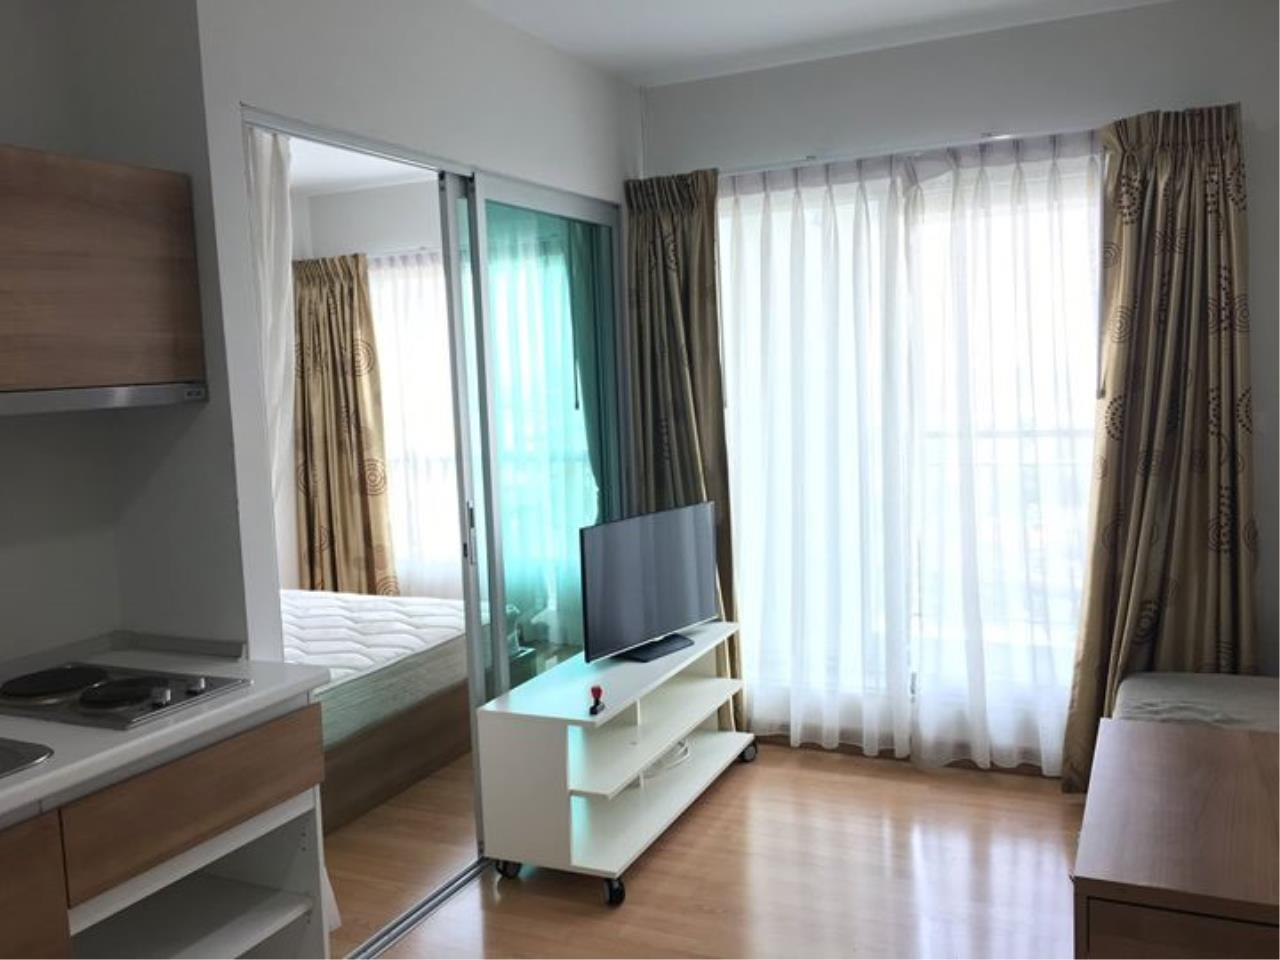 Quality Life Property Agency's S A L E !! ASPIRE RAMA 4 || 1BR 28 Sq.m., High Floor, River view 3